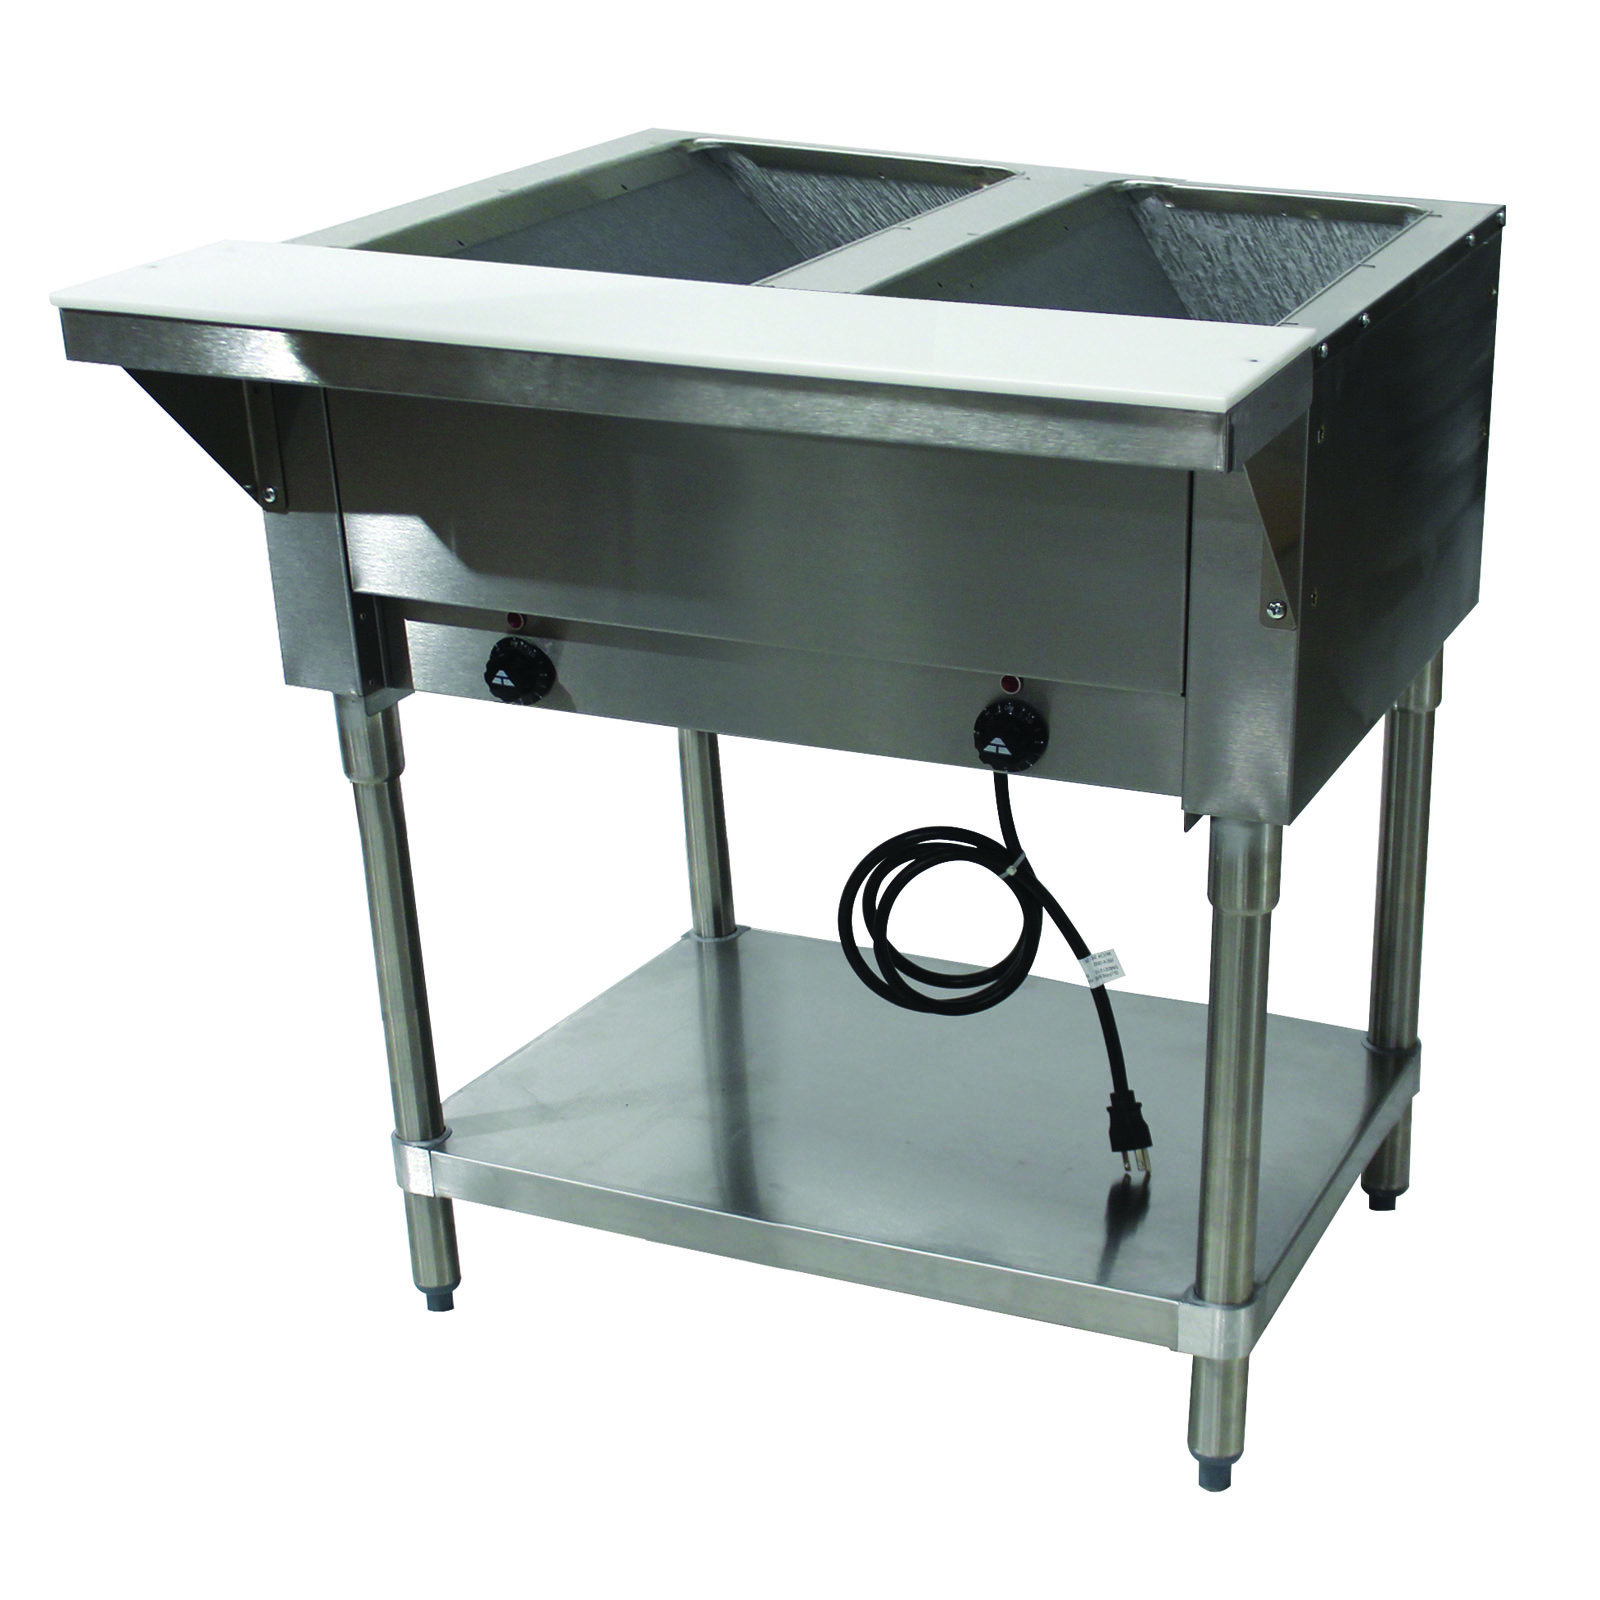 Advance Tabco HF-2E-240 serving counter, hot food, electric